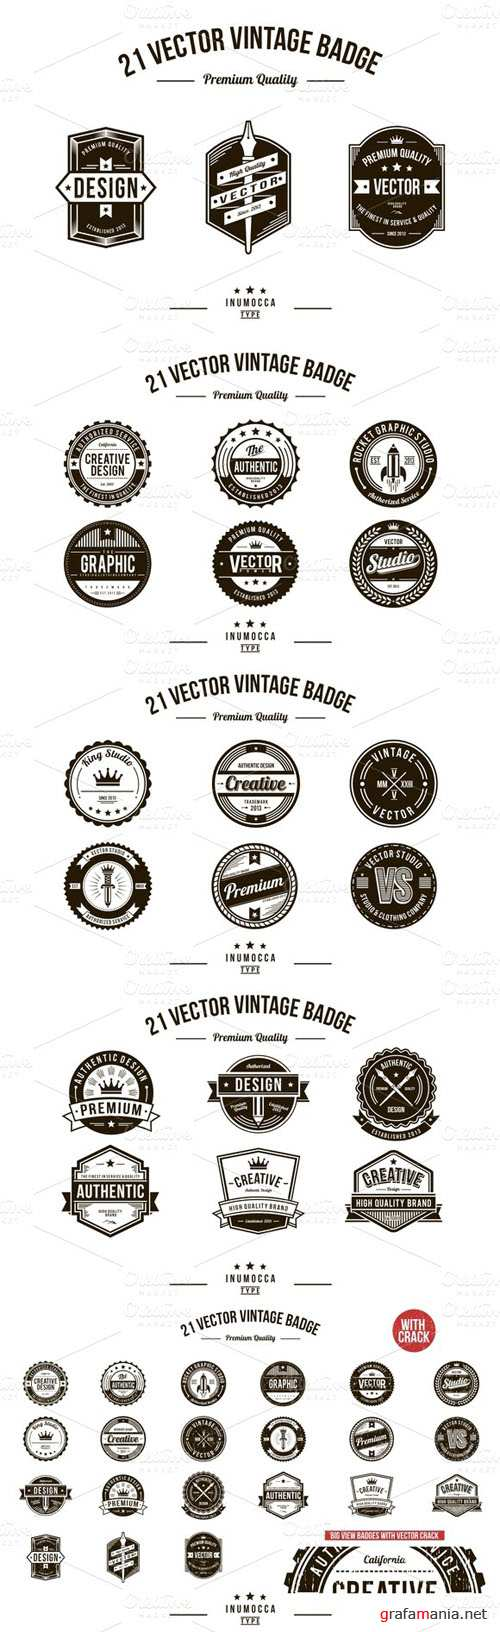 21 Vintage Badges (CLEAR & CRACK) - CM 13142